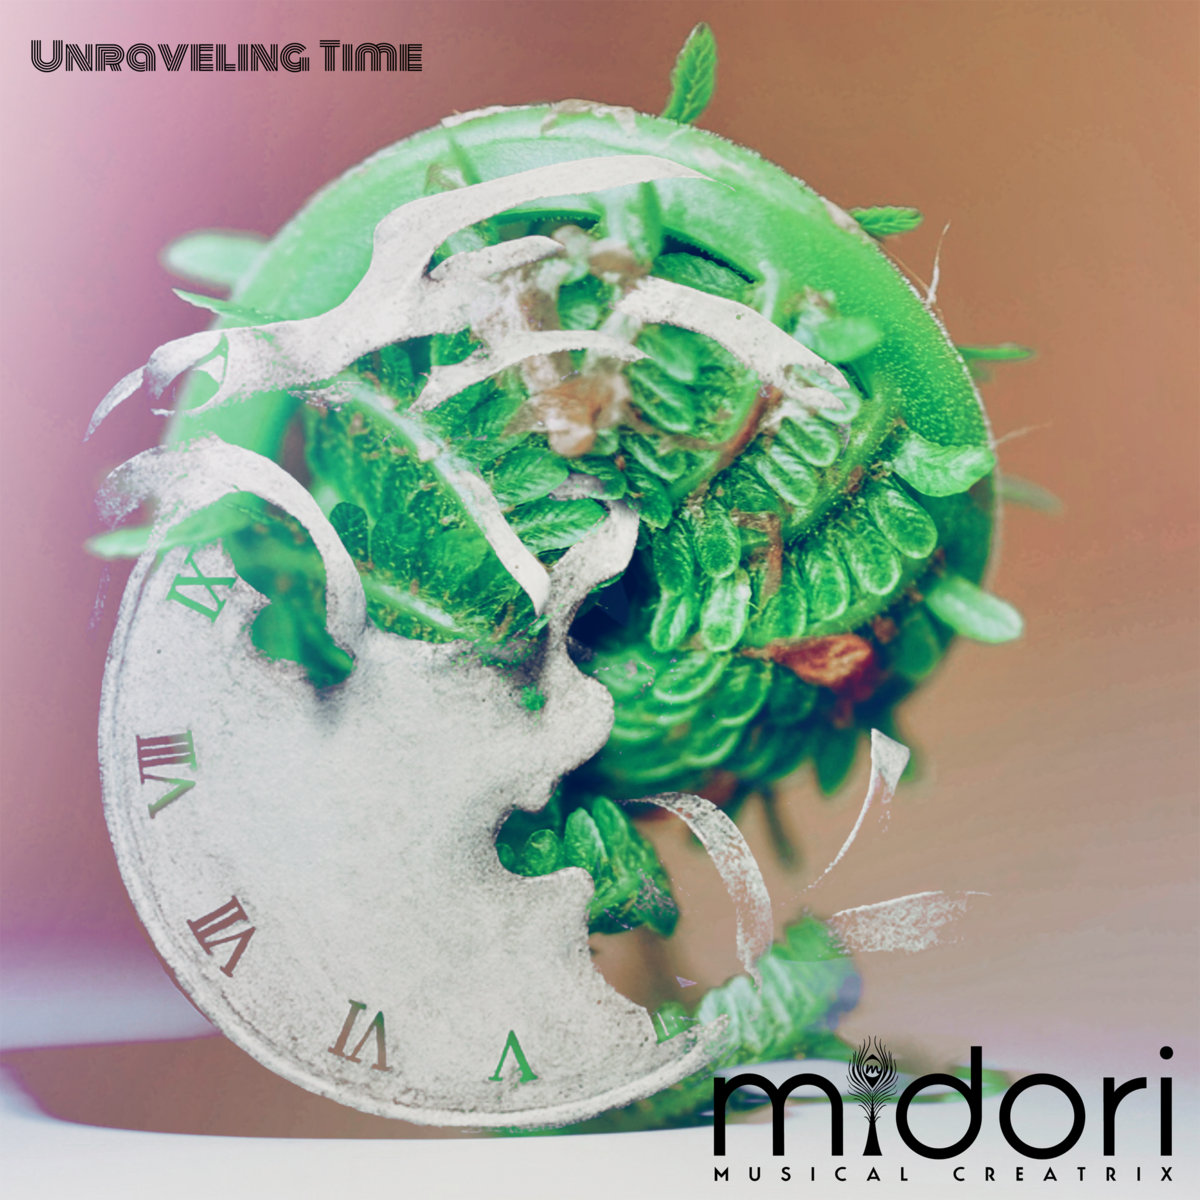 Unraveling Time by Midori